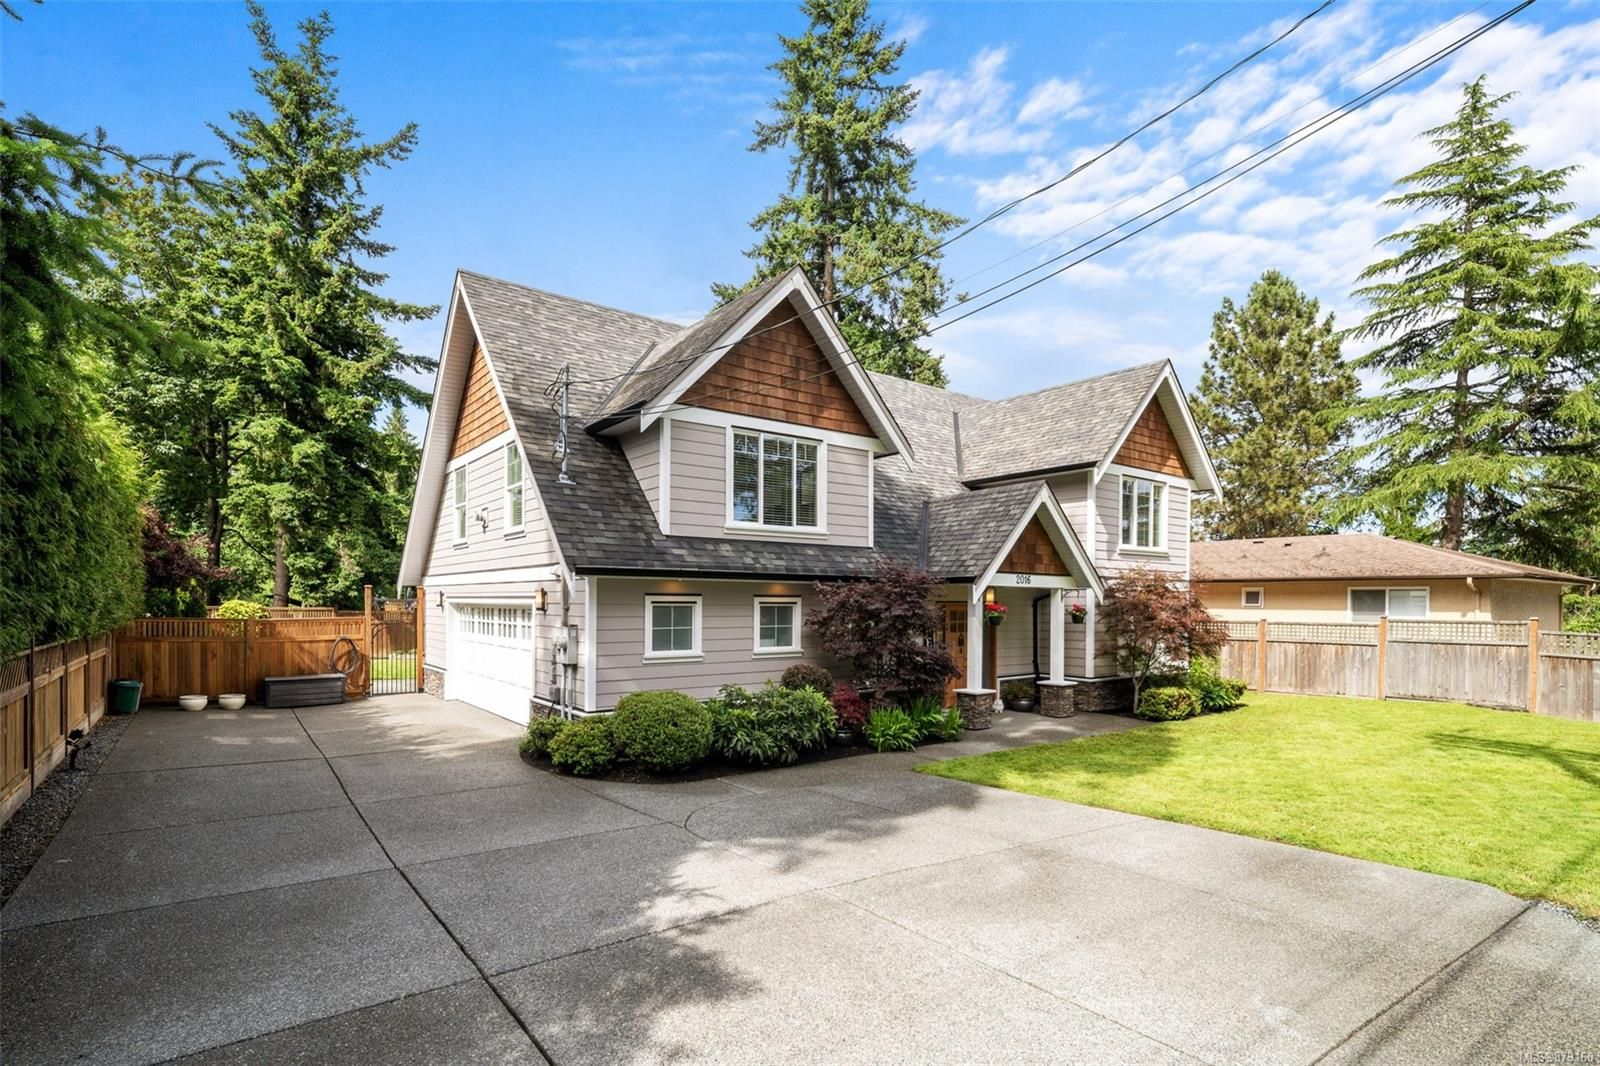 Main Photo: 2016 Stellys Cross Rd in : CS Saanichton House for sale (Central Saanich)  : MLS®# 879160